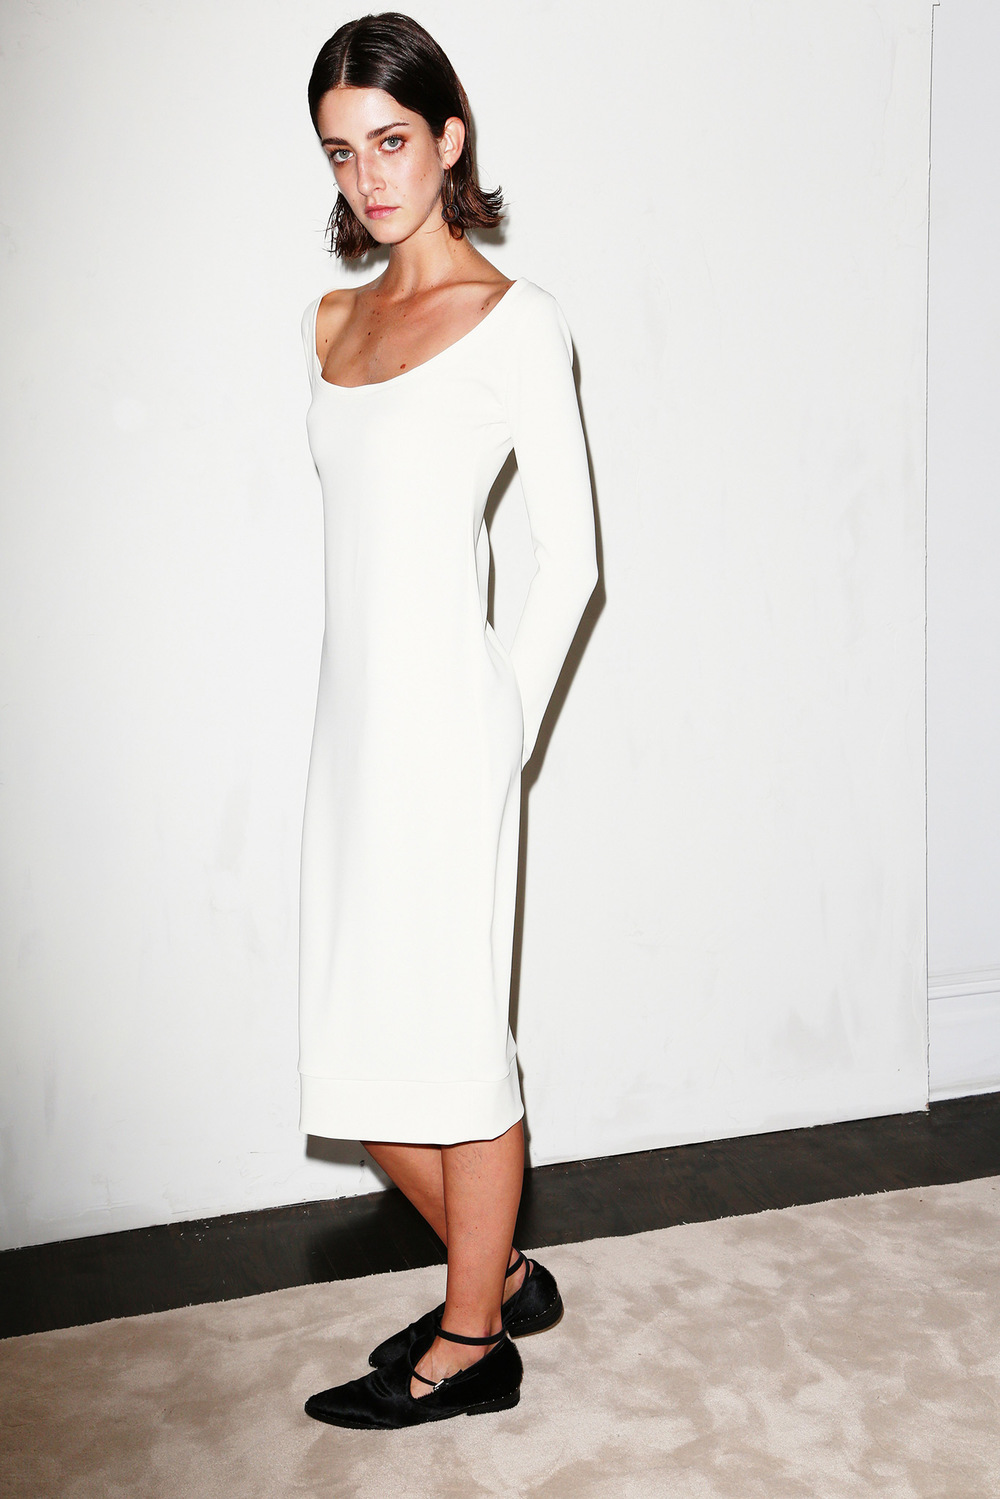 Chadwick Bell New York Fashion Week NYFW Discover and Escape